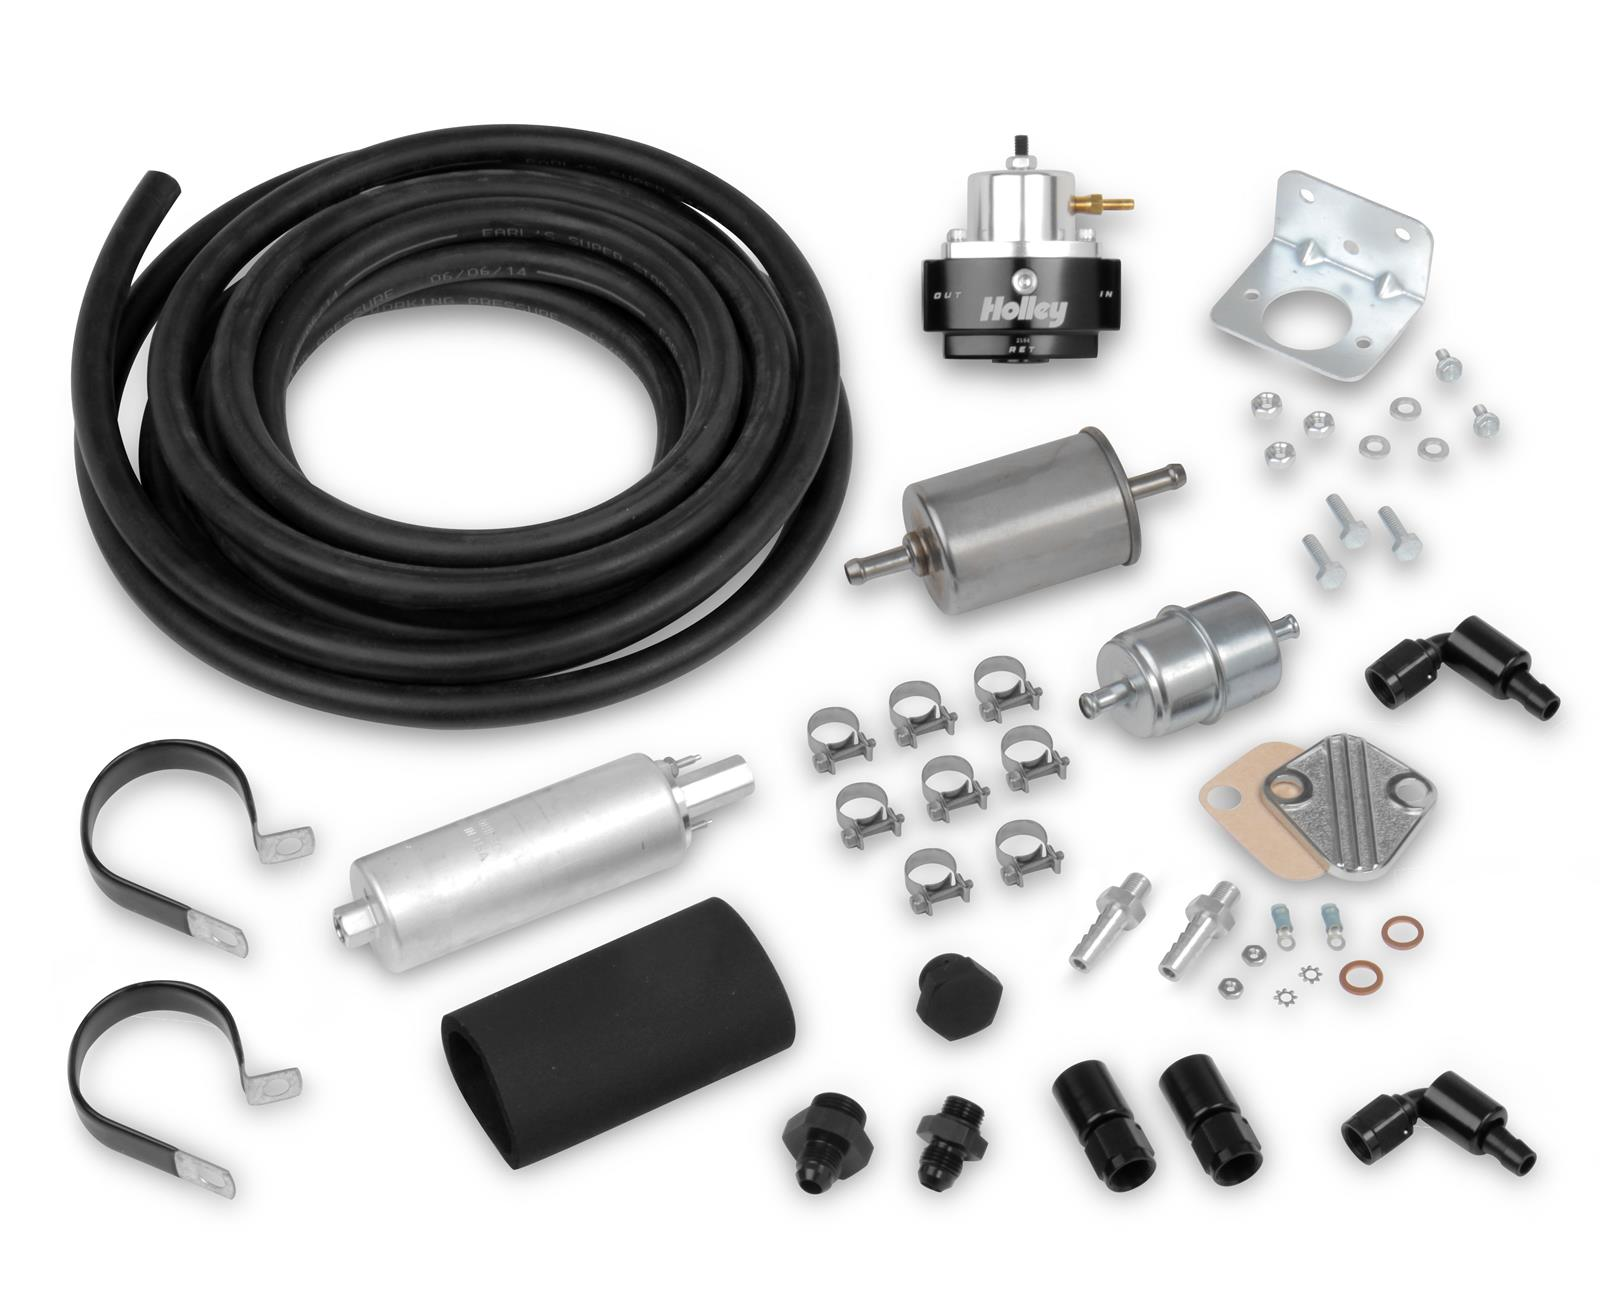 hight resolution of holley terminator efi fuel system plumbing kits 526 4 free shipping on orders over 99 at summit racing